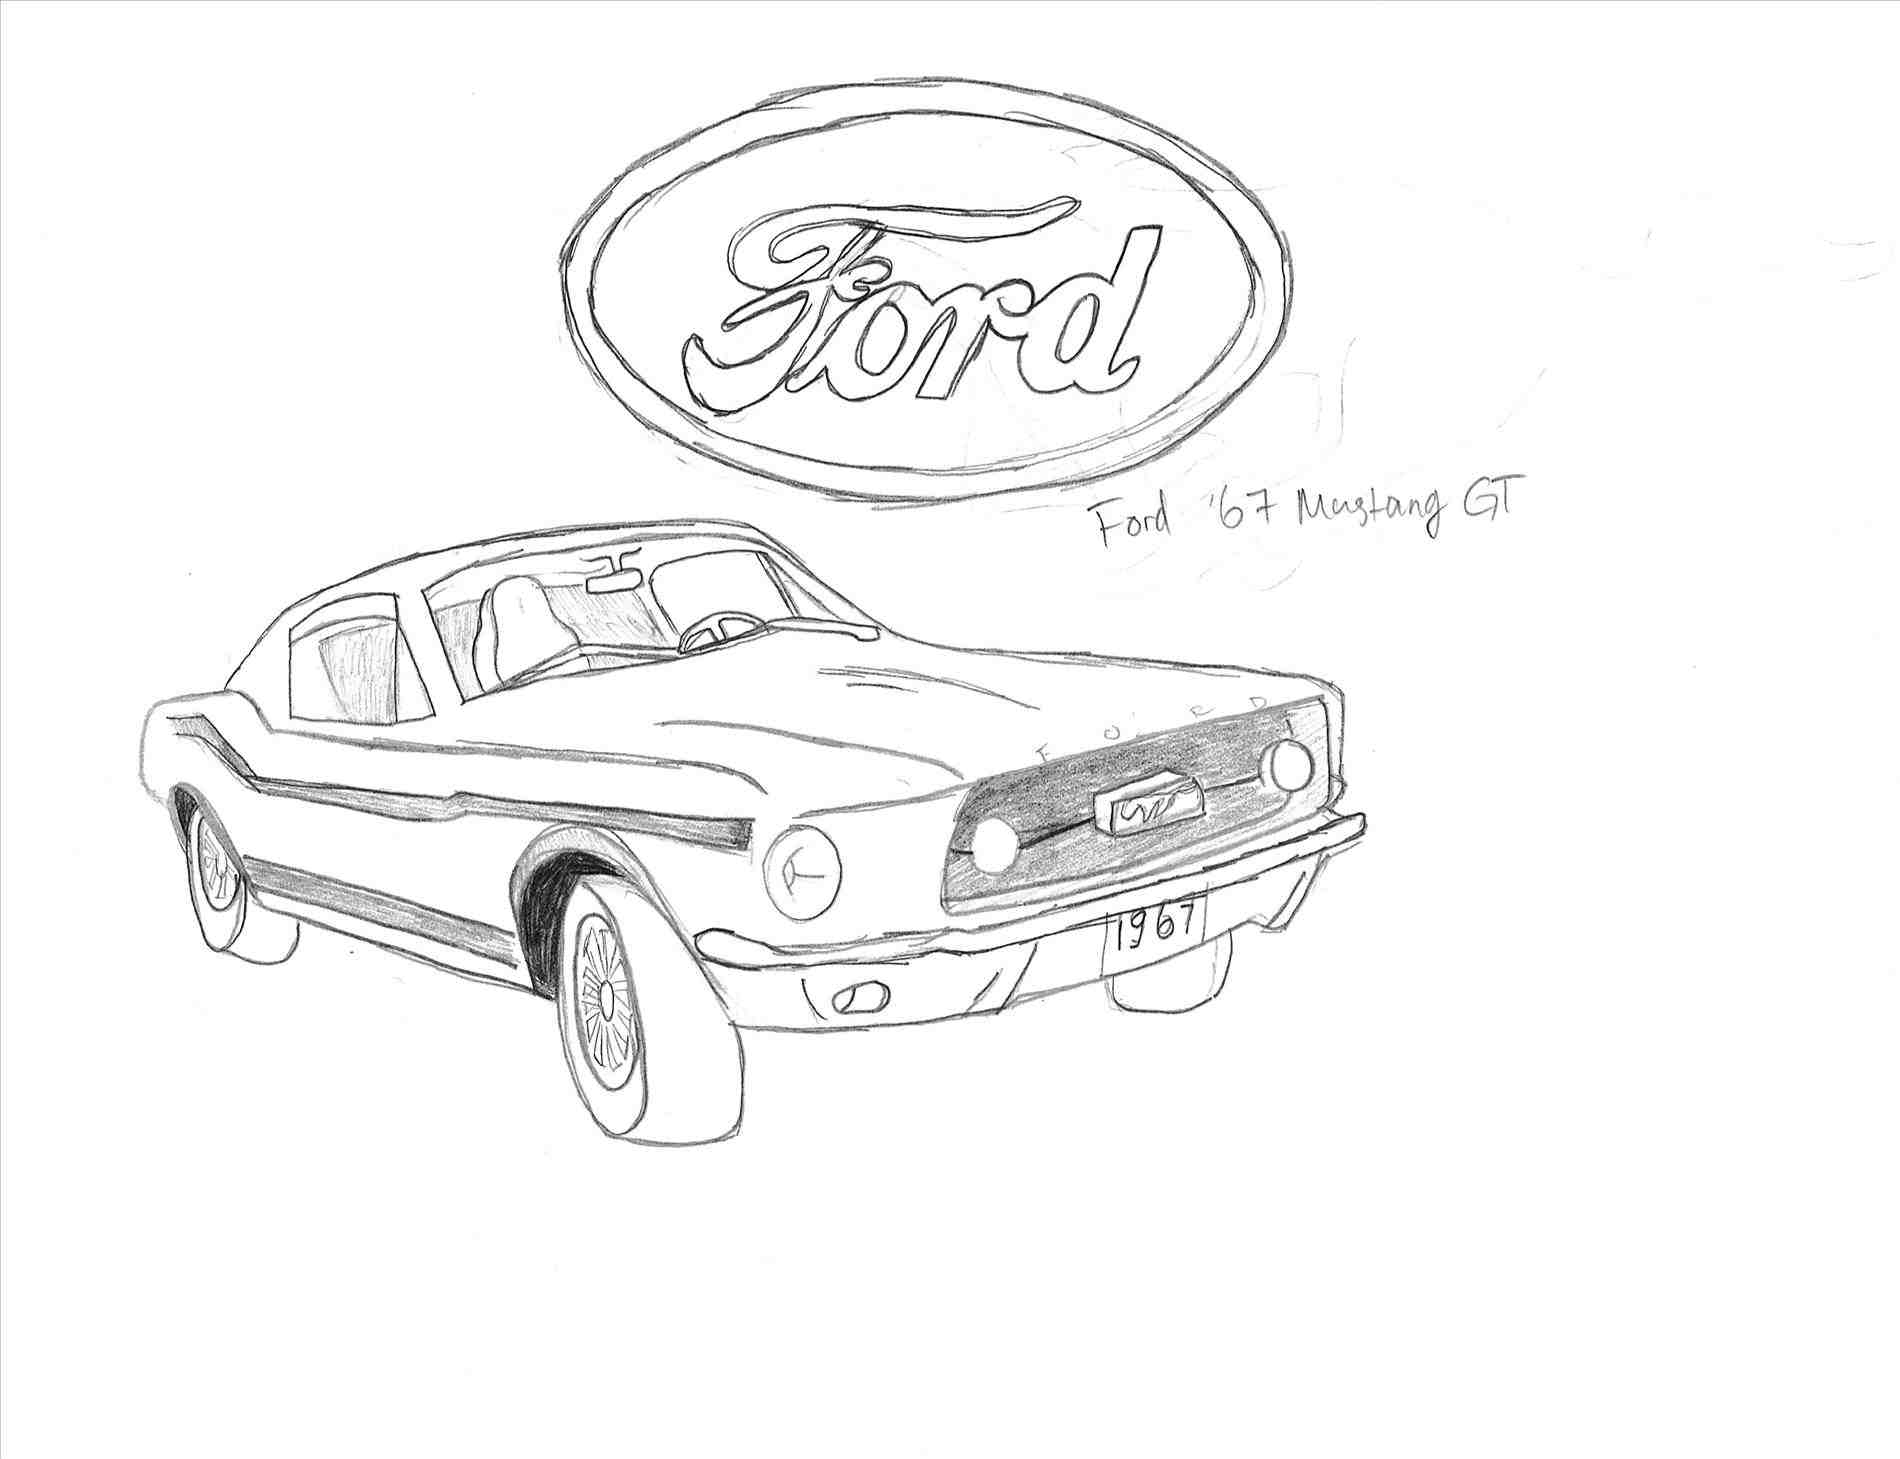 67 mustang drawing at getdrawings com